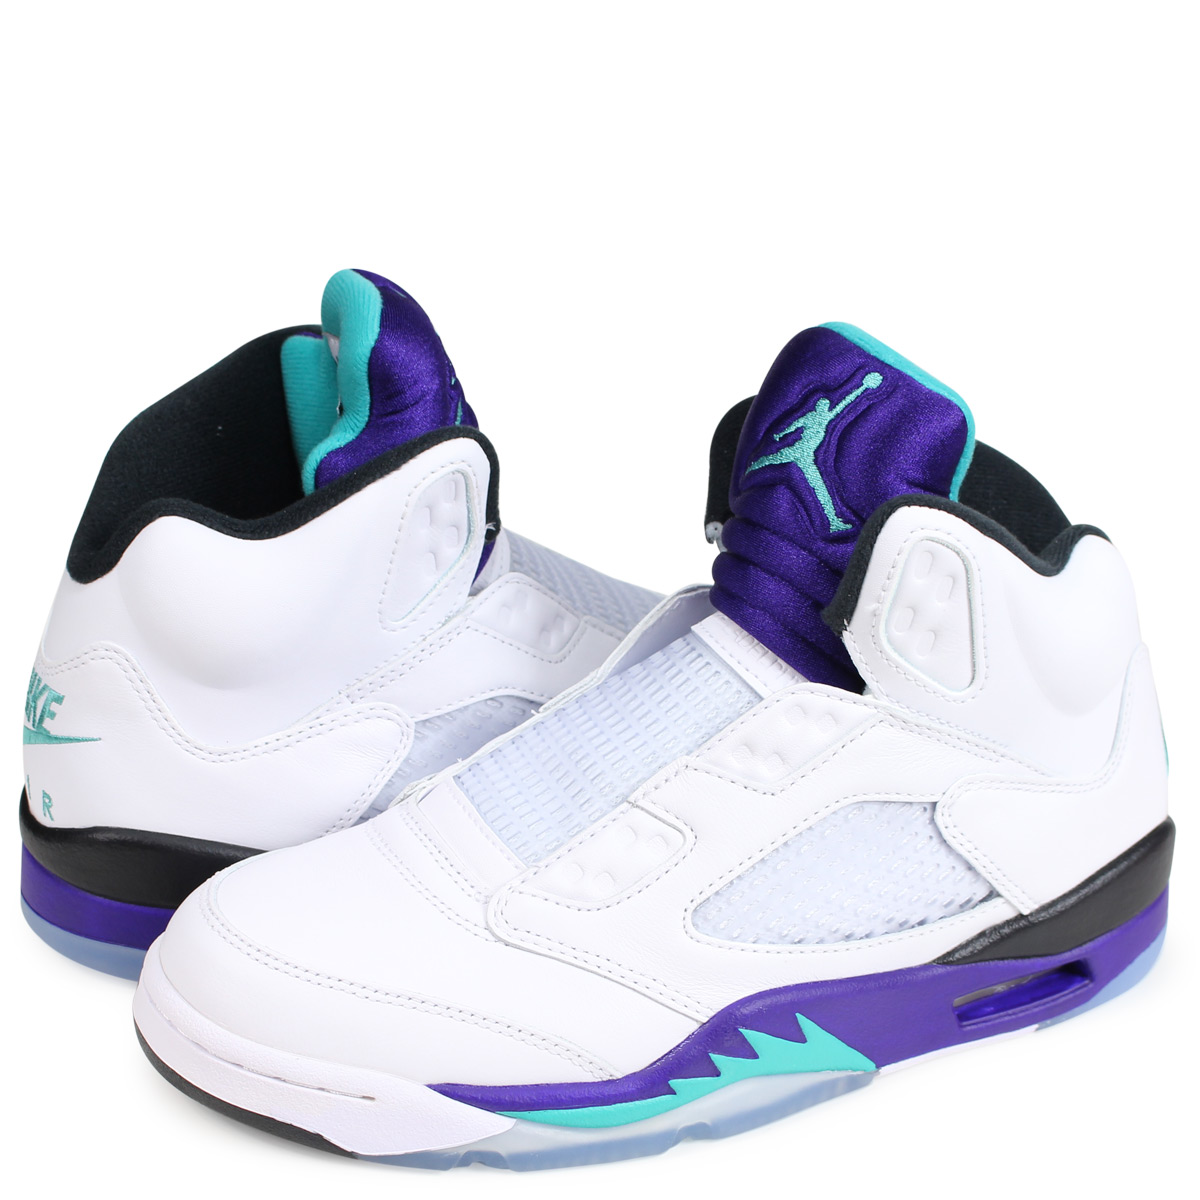 best service f2311 6b749 Nike NIKE Air Jordan 5 nostalgic sneakers men AIR JORDAN 5 RETRO NRG FRESH  PRINCE grape AV3919-135